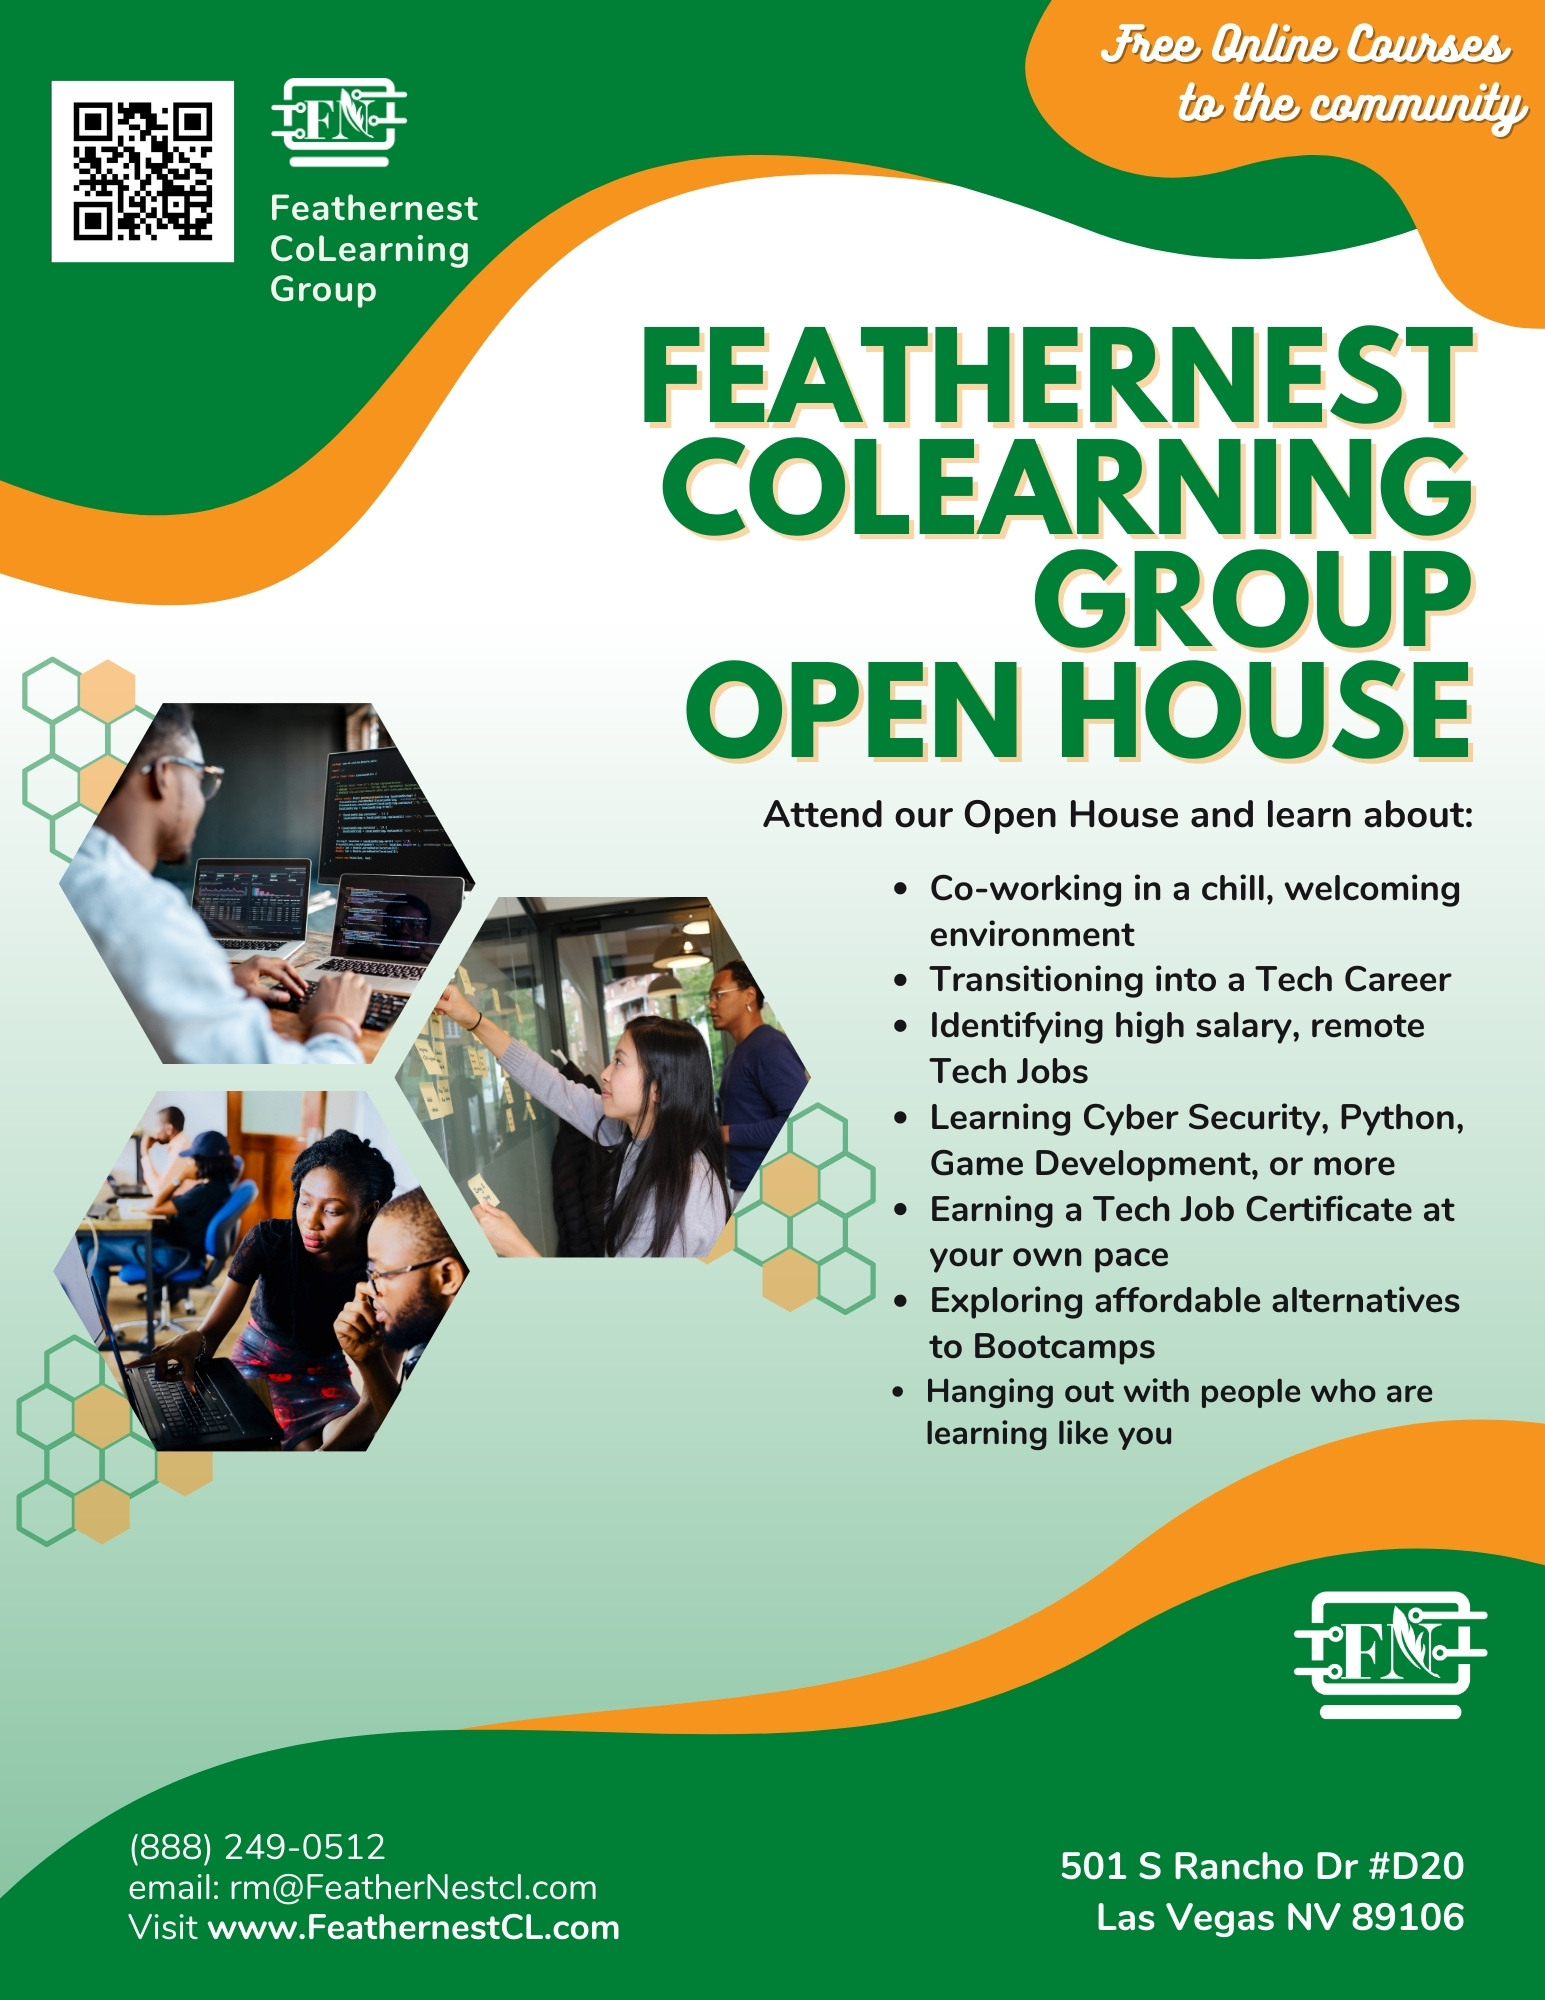 Feathernest open house flier - QR Code (2)